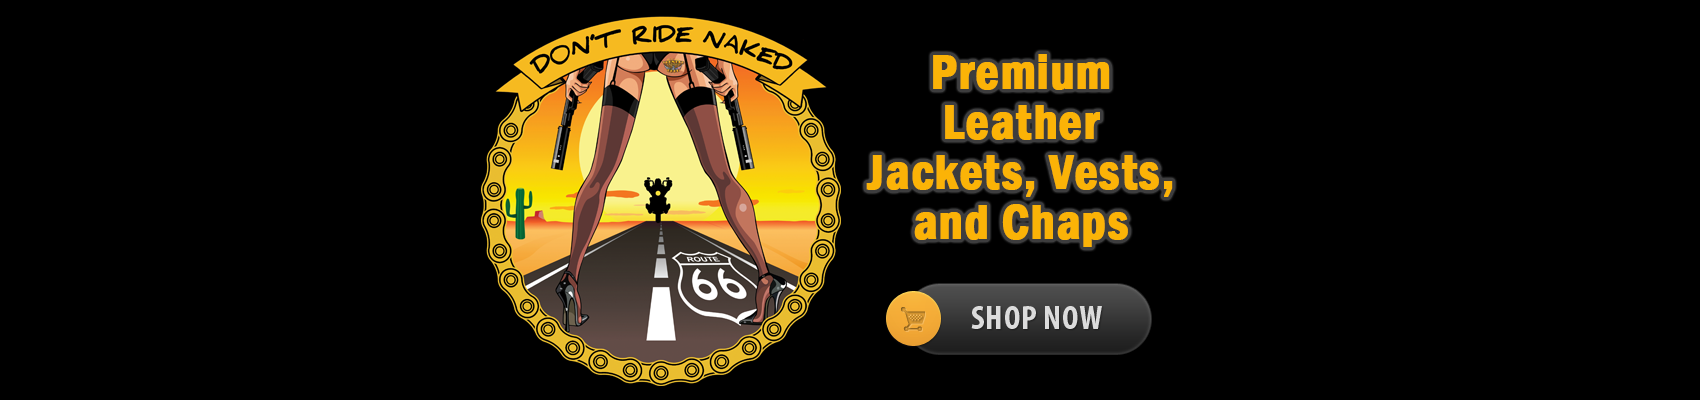 Kingman AZ leather jackets, leather vests, leather chaps